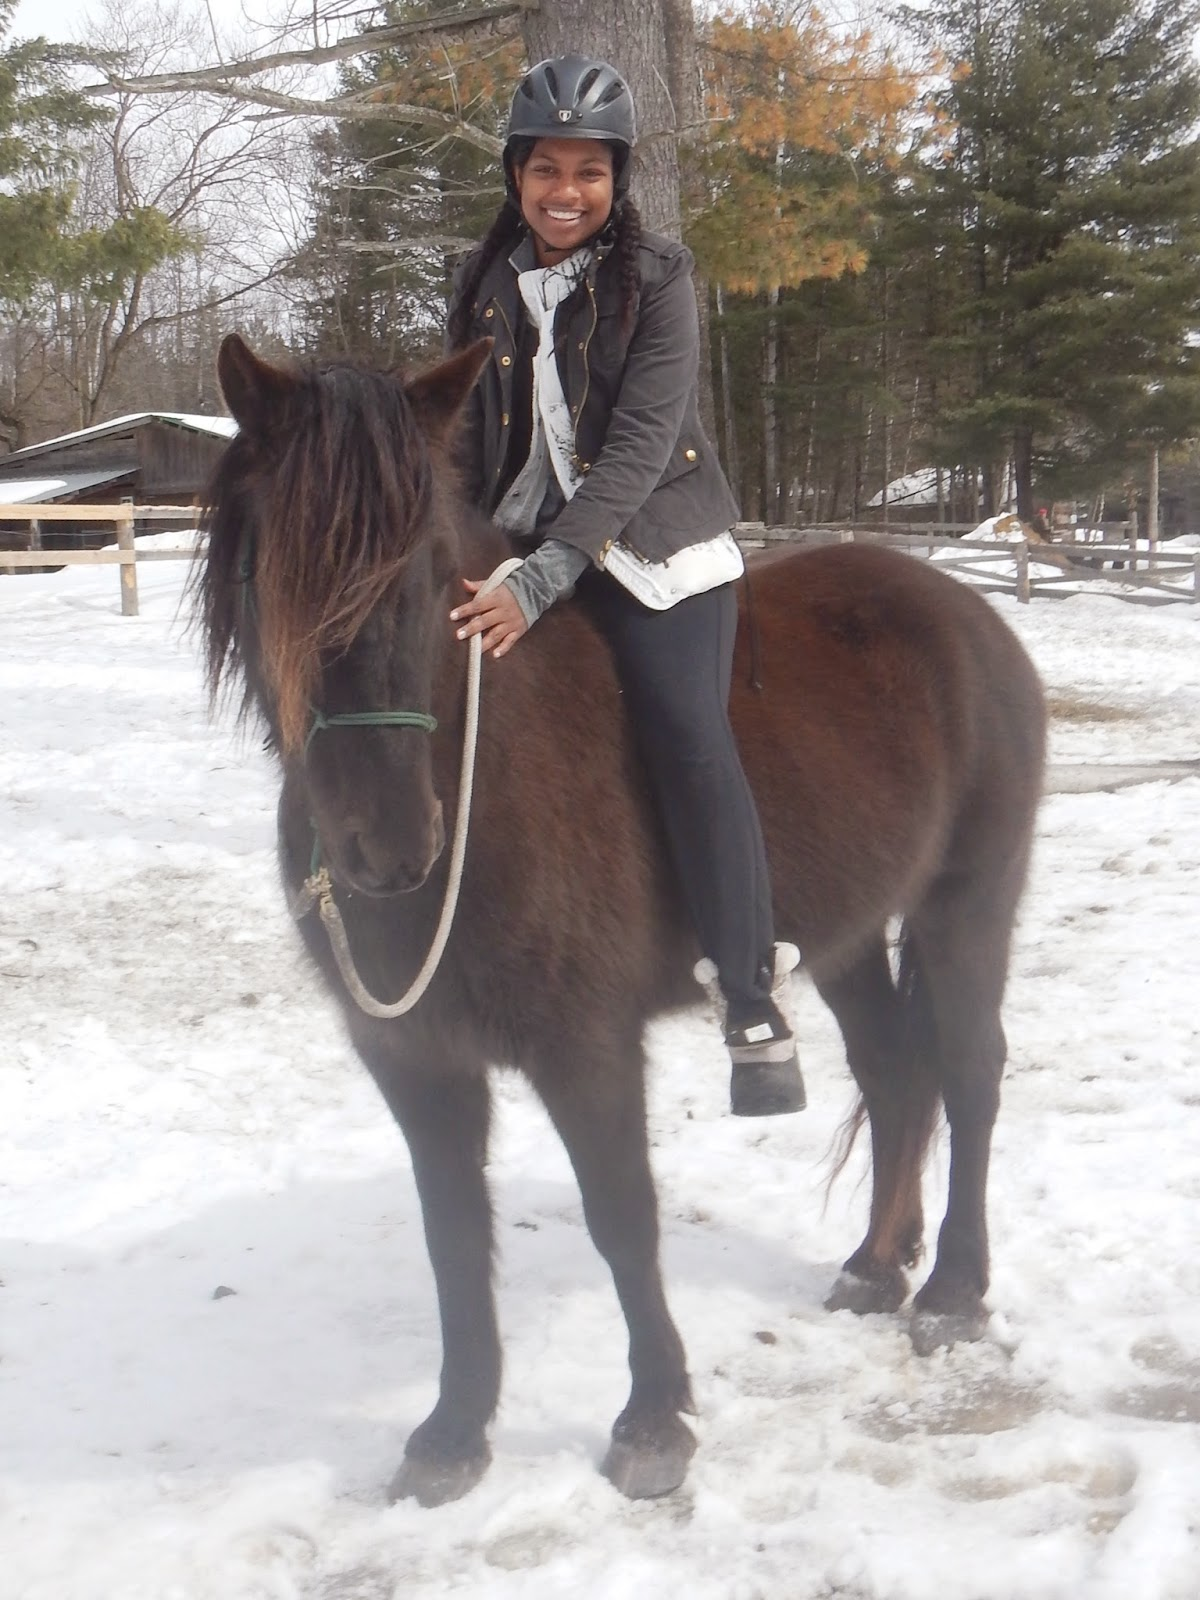 Horseback riding in Canada